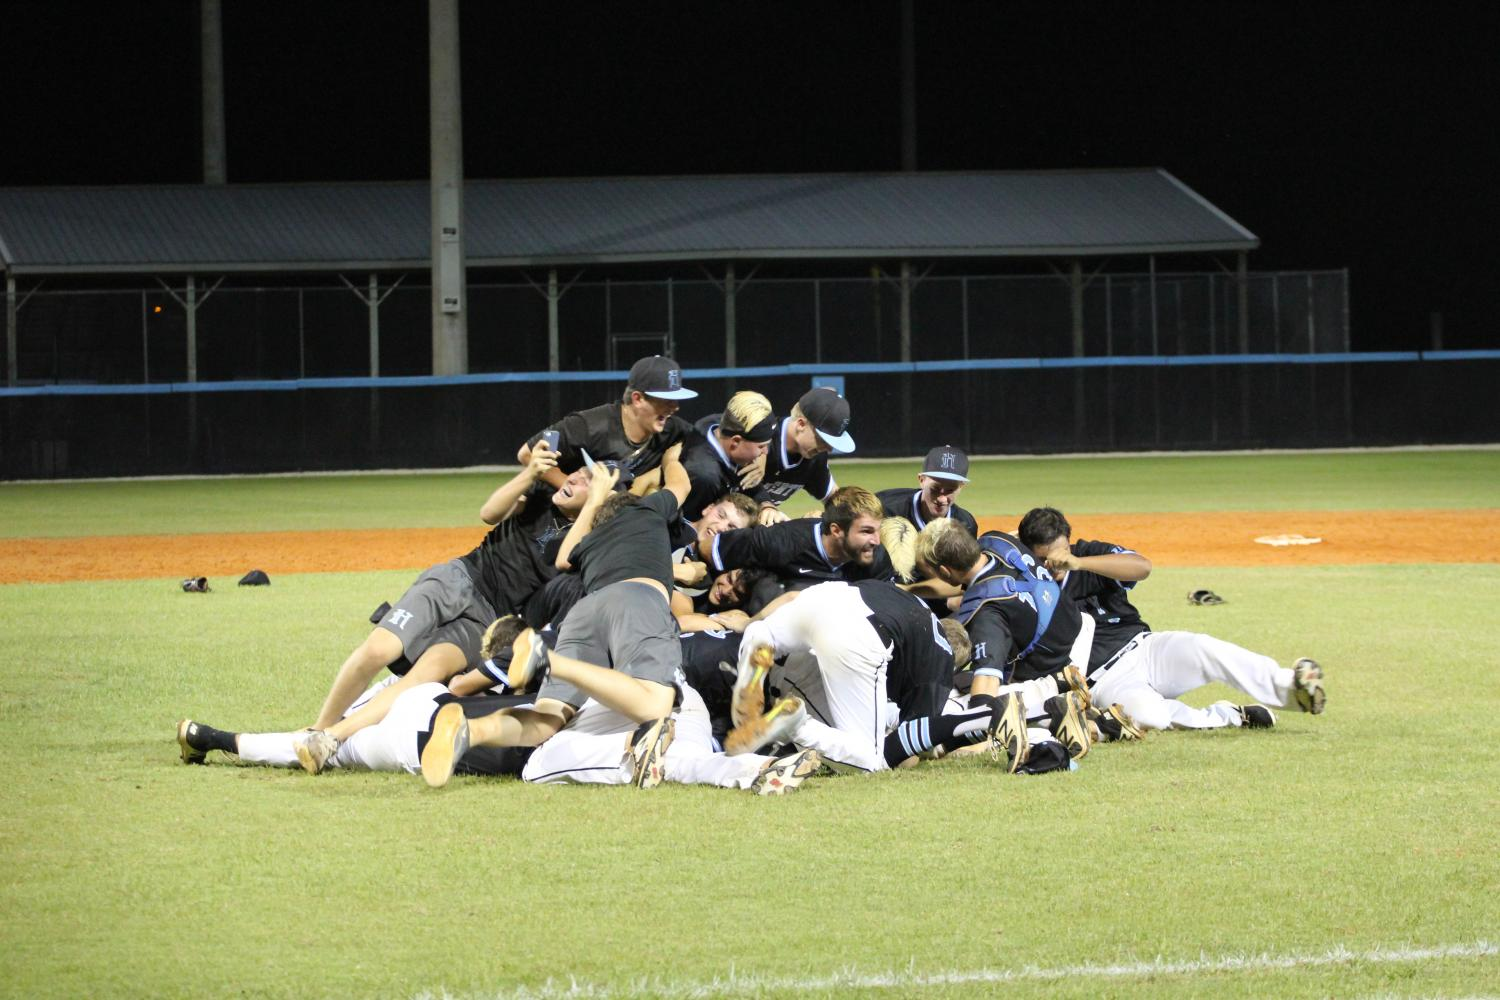 The+baseball+team+celebrates+after+a+6-2+win+in+the+regional+final+against+George+Jenkins.+The+team+will+play+in+the+state+semifinals+on+Friday%2C+June+2+against+Sarasota+in++Fort+Meyers.+